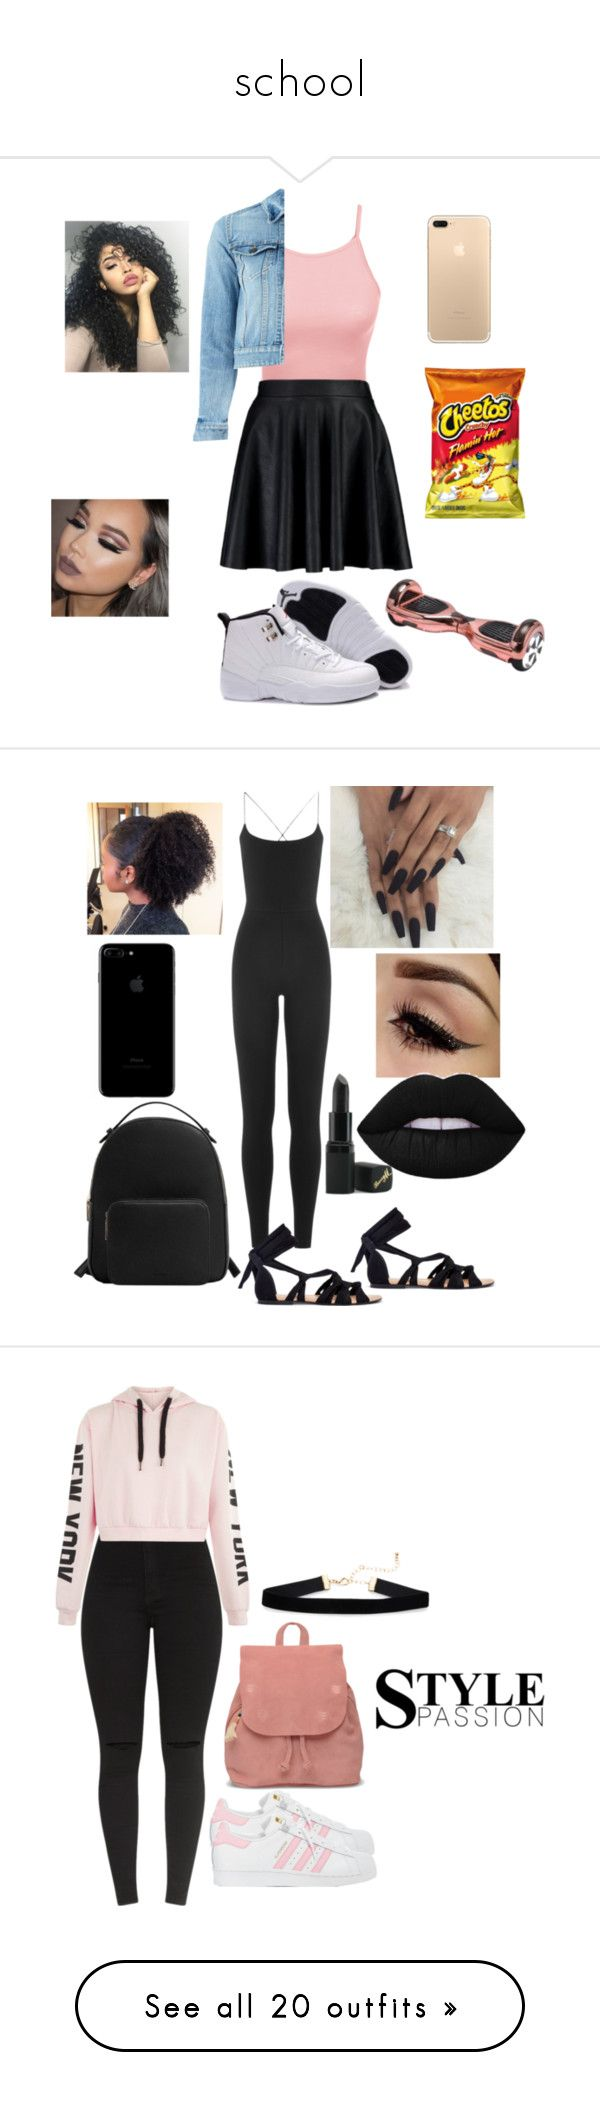 school by greene-ashia on Polyvore featuring polyvore fashion style LE3NO Boohoo Yves Saint Laurent clothing Valentino MANGO Barry M adidas TOMS Chicwish Topshop ANNA Dorothy Perkins Accessorize NIKE Charlotte Russe Ted Baker Too Faced Cosmetics tarte NARS Cosmetics LORAC Laura Mercier Forever 21 Sephora Collection Anastasia Beverly Hills Betsey Johnson Golden Goose Victoria's Secret rag & bone SUN68 Rebecca Minkoff Lime Crime WithChic Kendall + Kylie Jeffree Star adidas Originals Hot Topic…